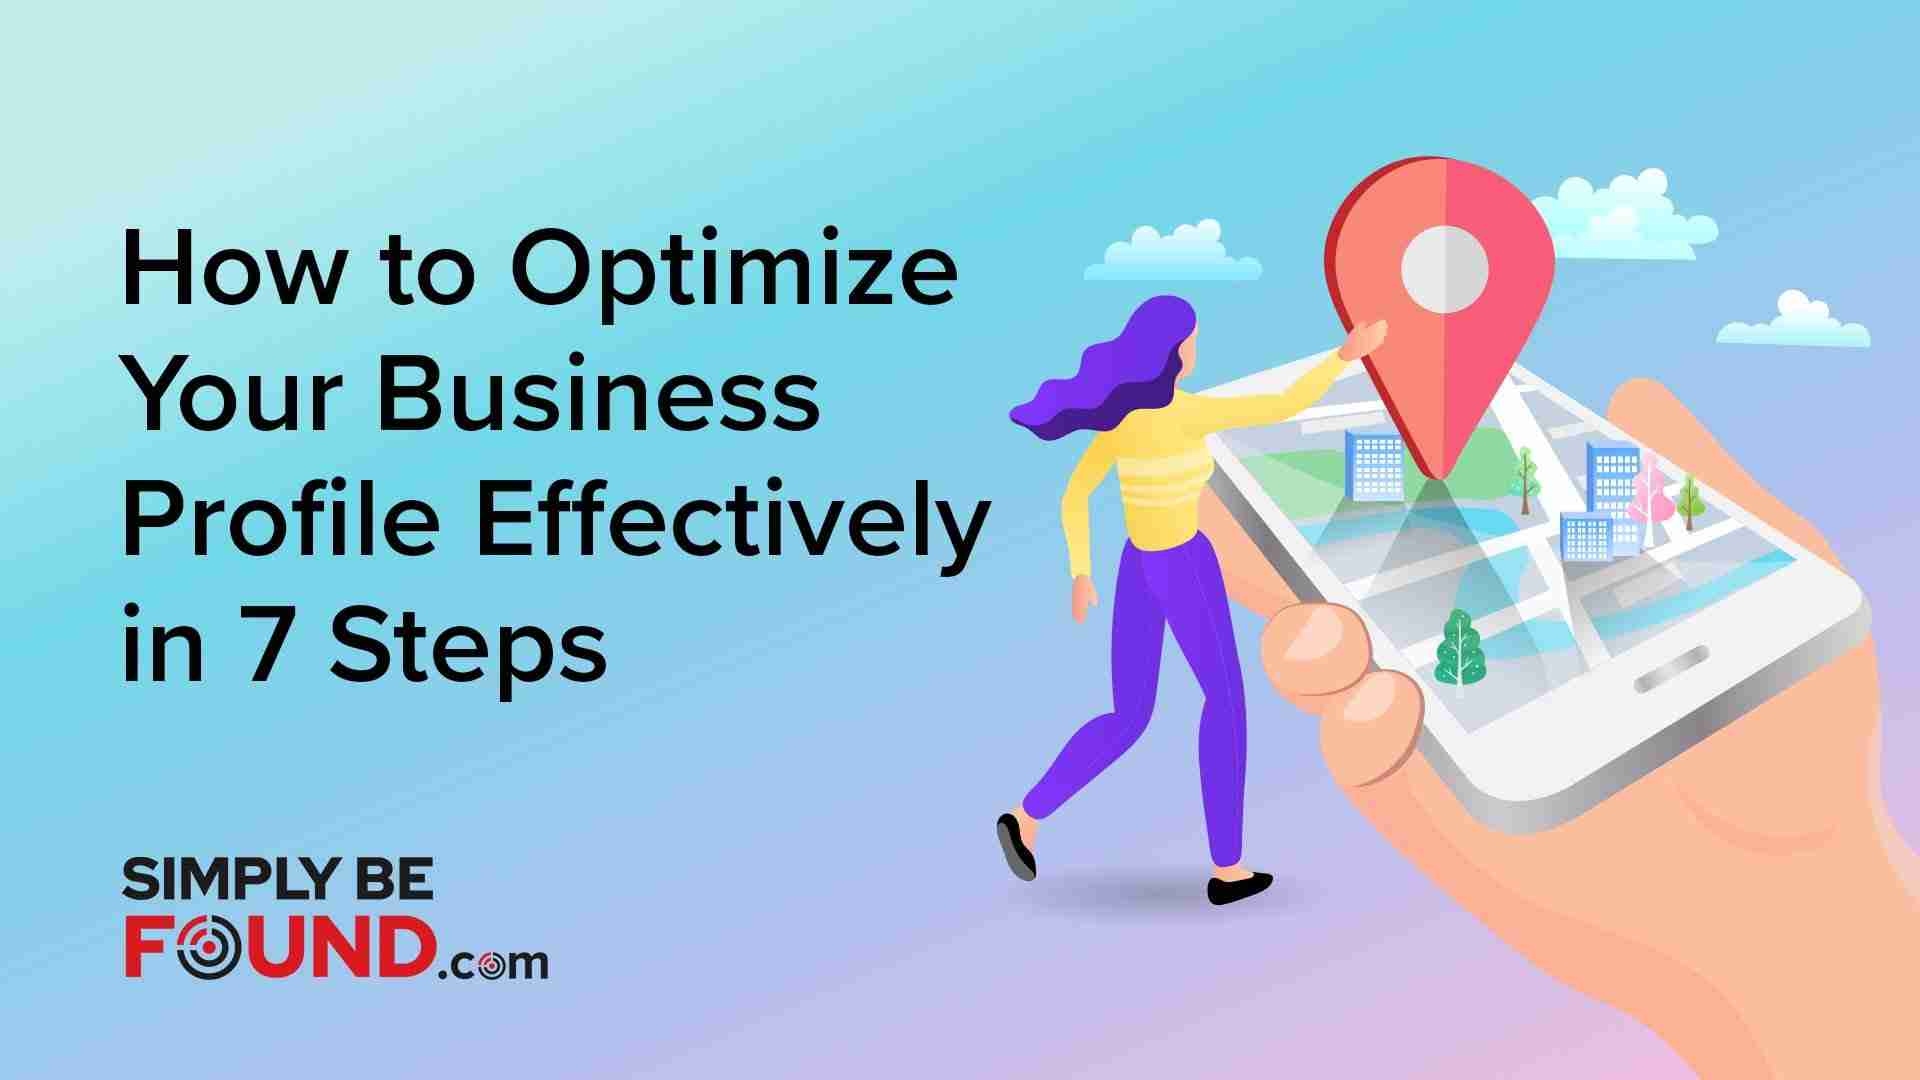 How to Optimize Your Business Profile Effectively